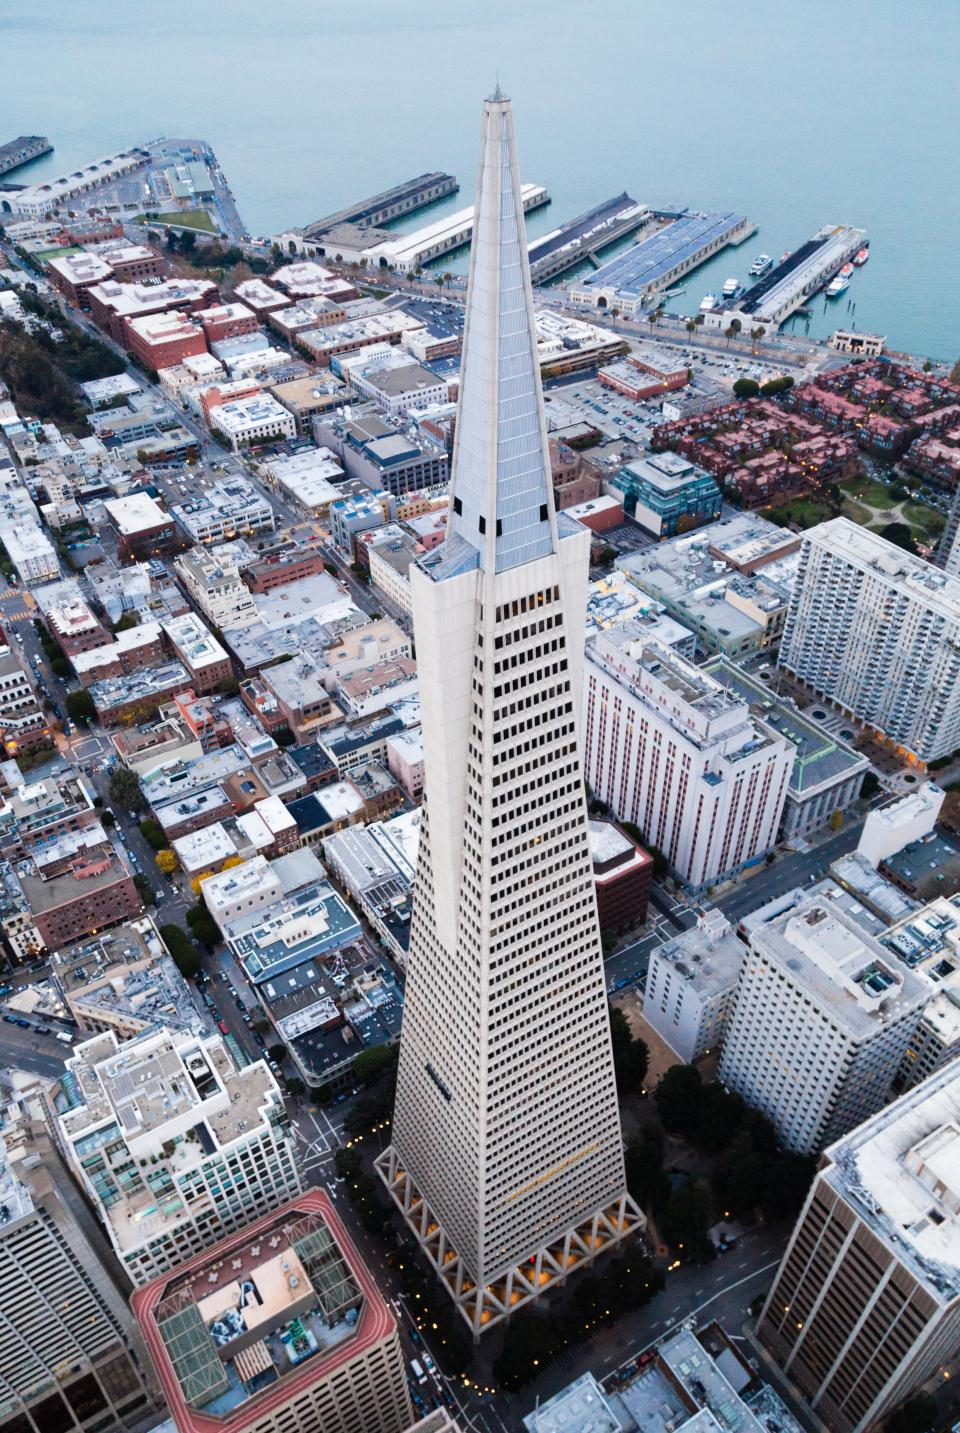 architecture buildings infrastructure sea water tower city skyline road street car vehicle travel aerial view